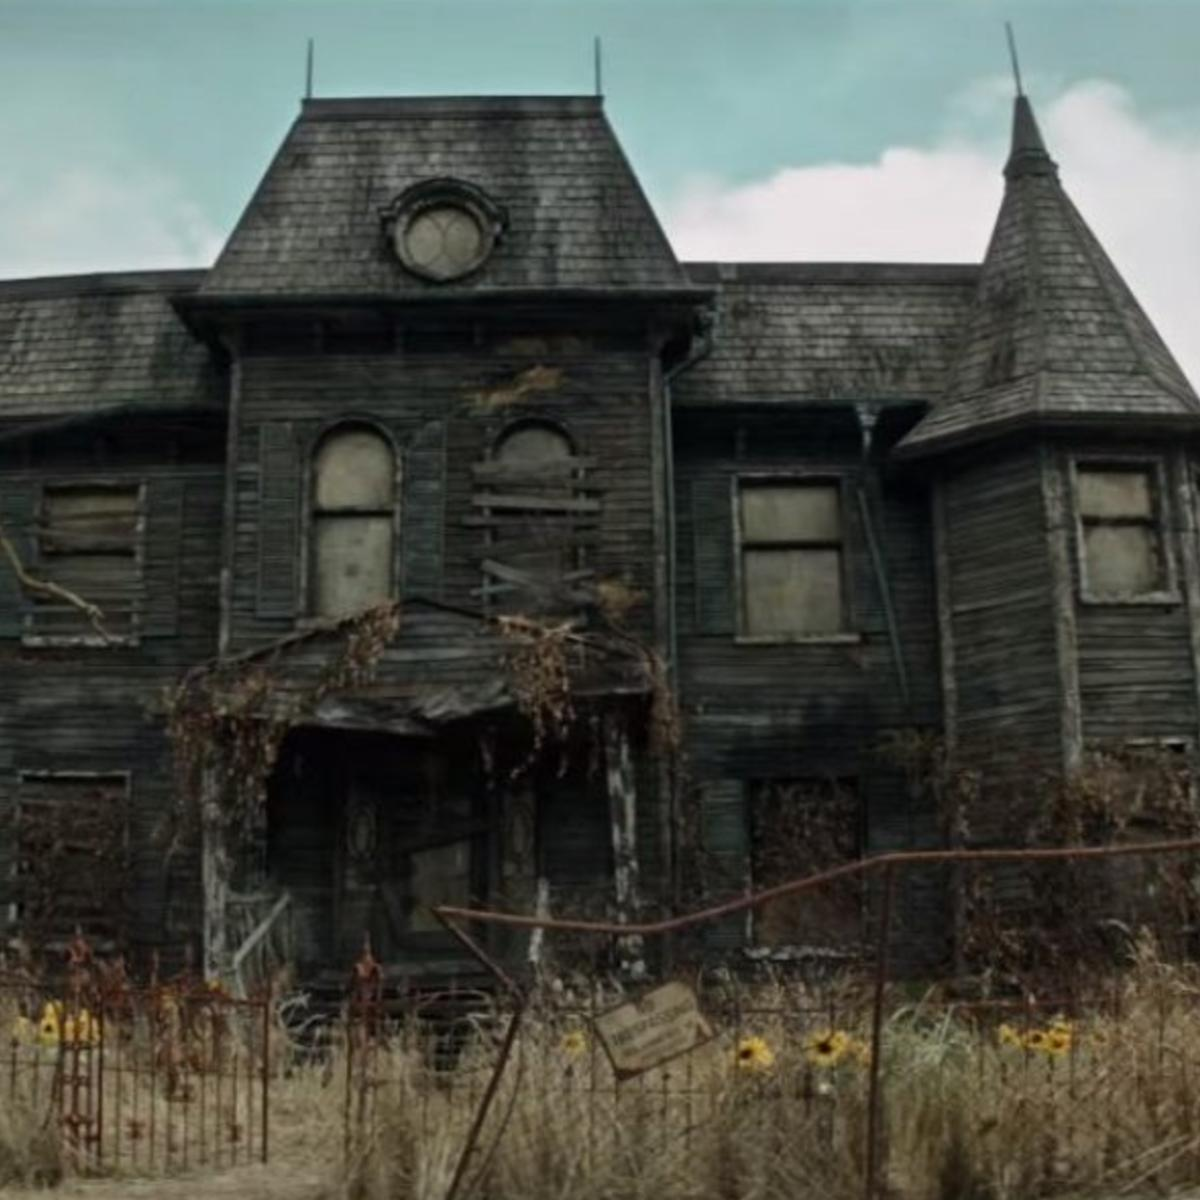 Syfy   The It house was actually a creepy haunted house IRL  too     The It house was actually a creepy haunted house IRL  too